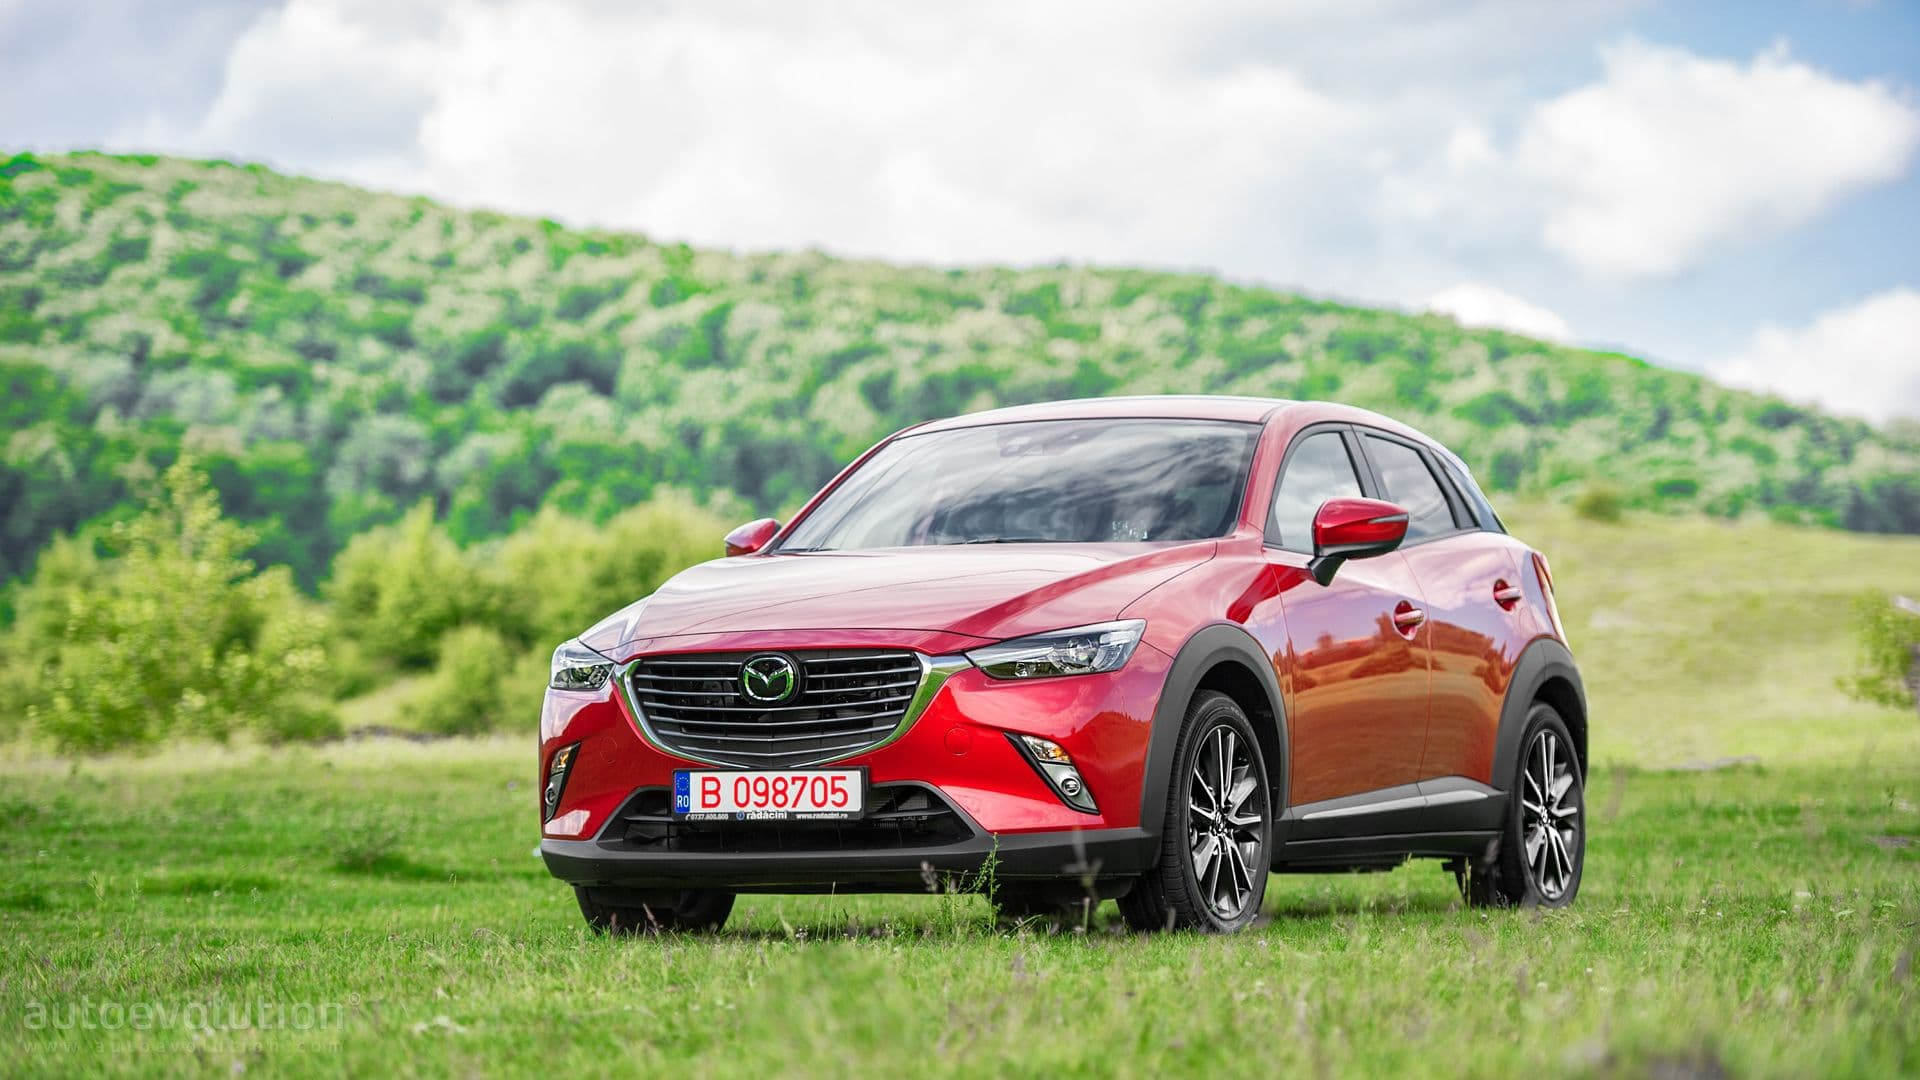 mazda cx 3 2016 wallpapers hd high resolution